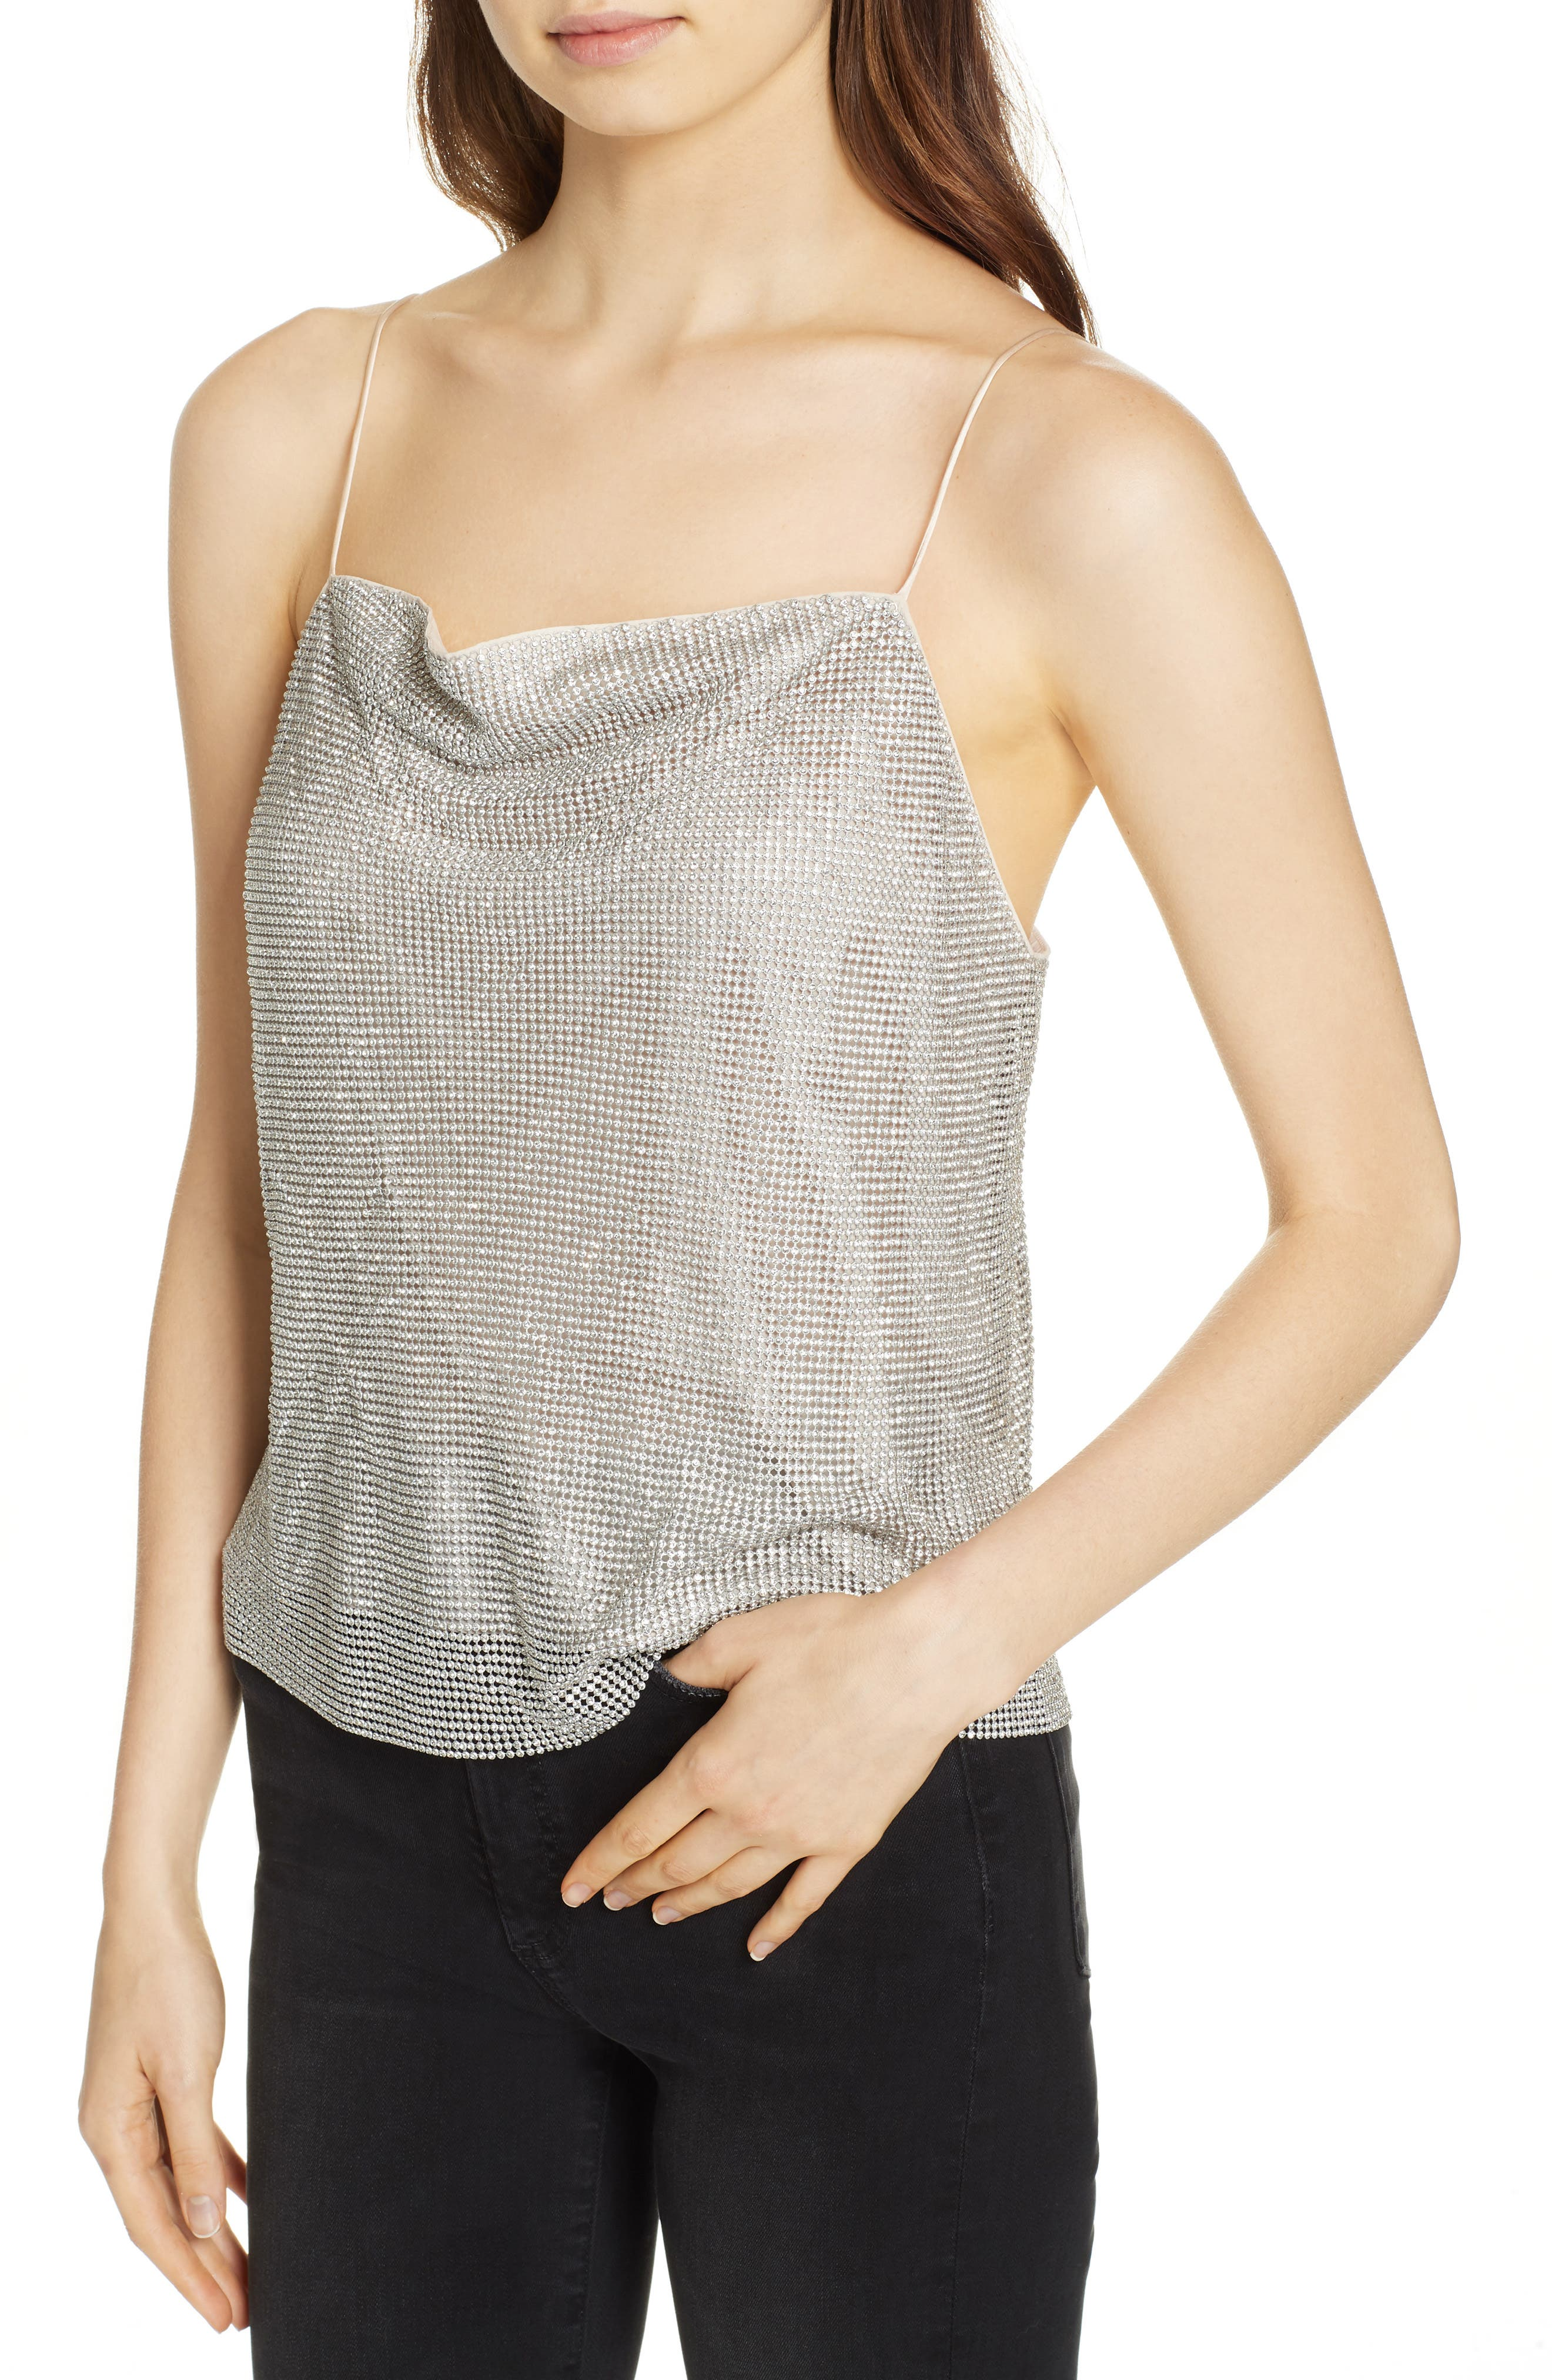 Harmon Crystal Chainmaille Camisole,                             Alternate thumbnail 4, color,                             SILVER/ CHAINMAIL